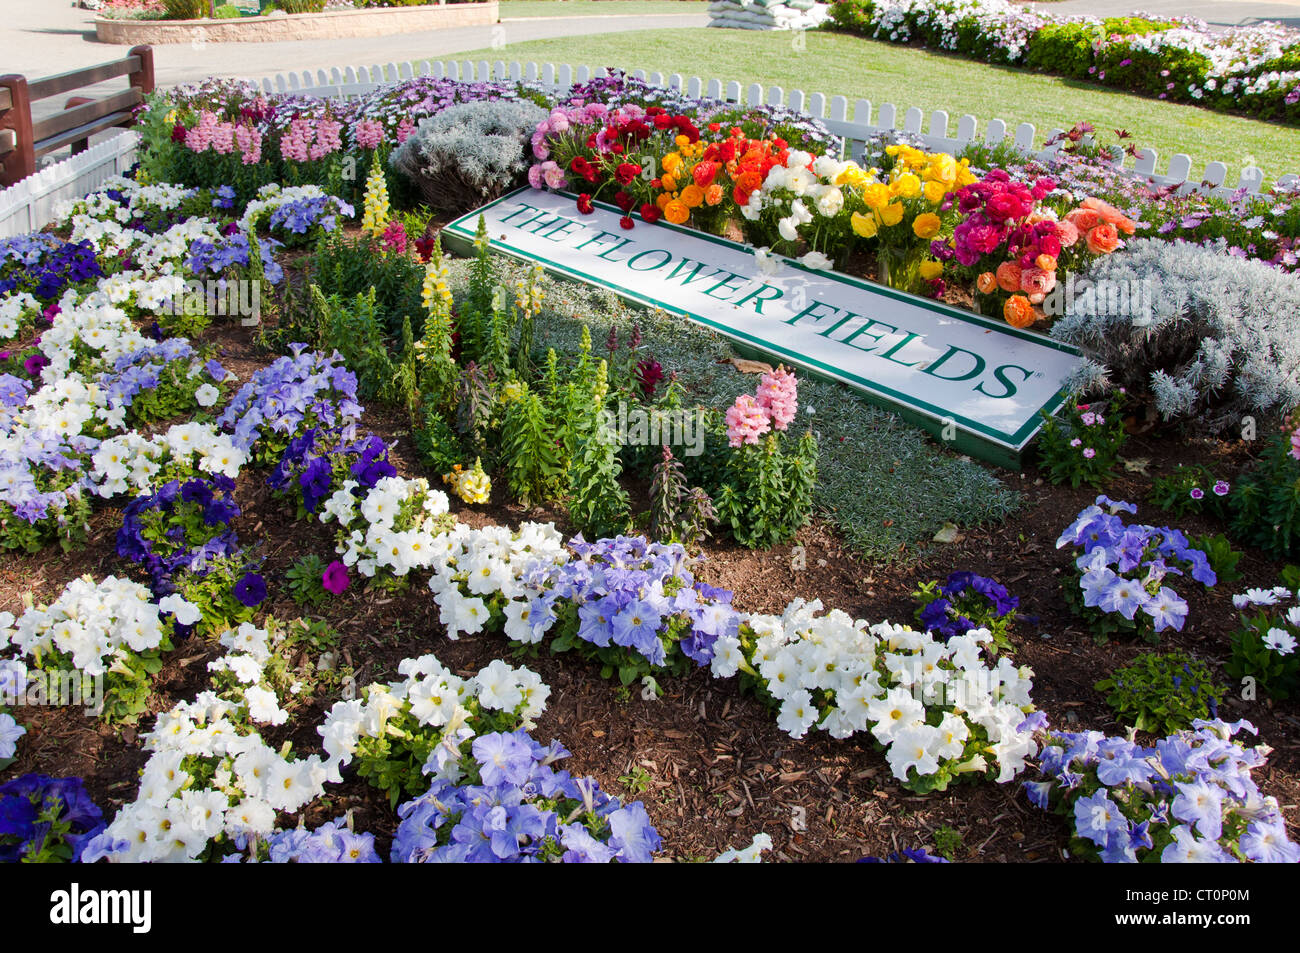 Charmant Garden With Mixed Flowers, Flower Fields, Carlsbad, California, USA   Stock  Image